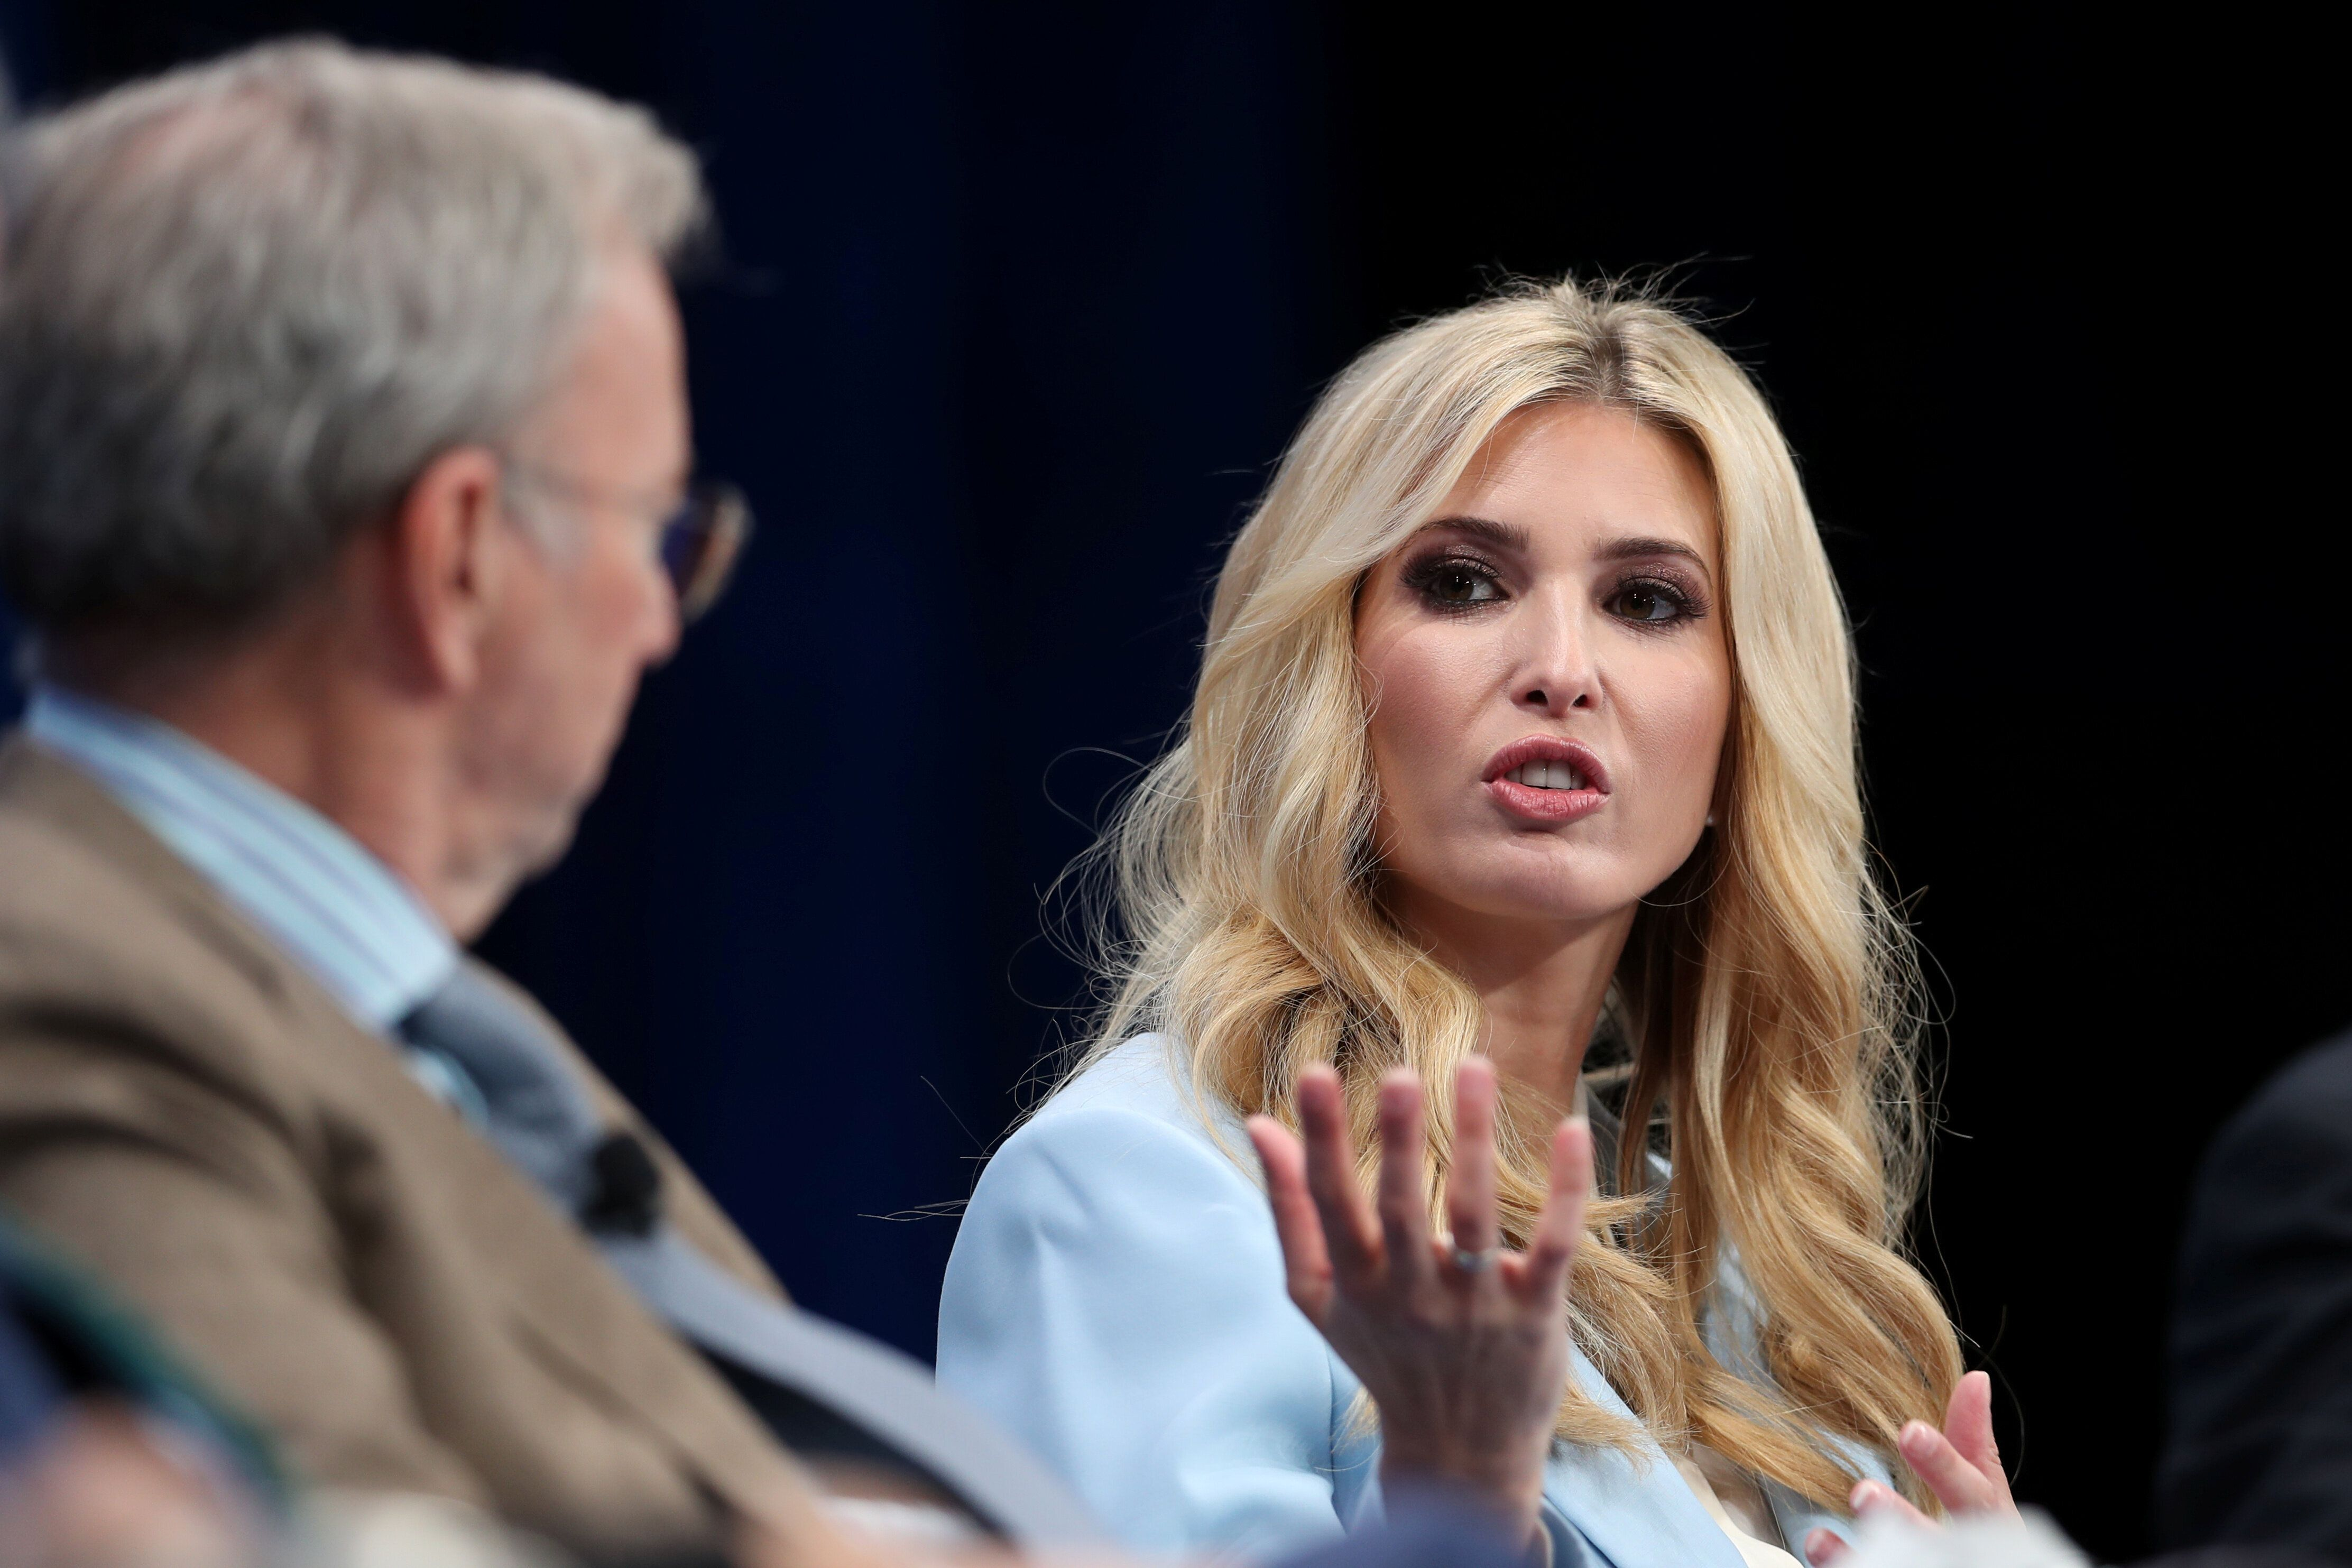 Ivanka Trump, Advisor to the President, The White House and Co-Chair of the American Workforce, speaks at the 2019 Milken Institute Global Conference in Beverly Hills, California, U.S., April 29, 2019. REUTERS/Lucy Nicholson